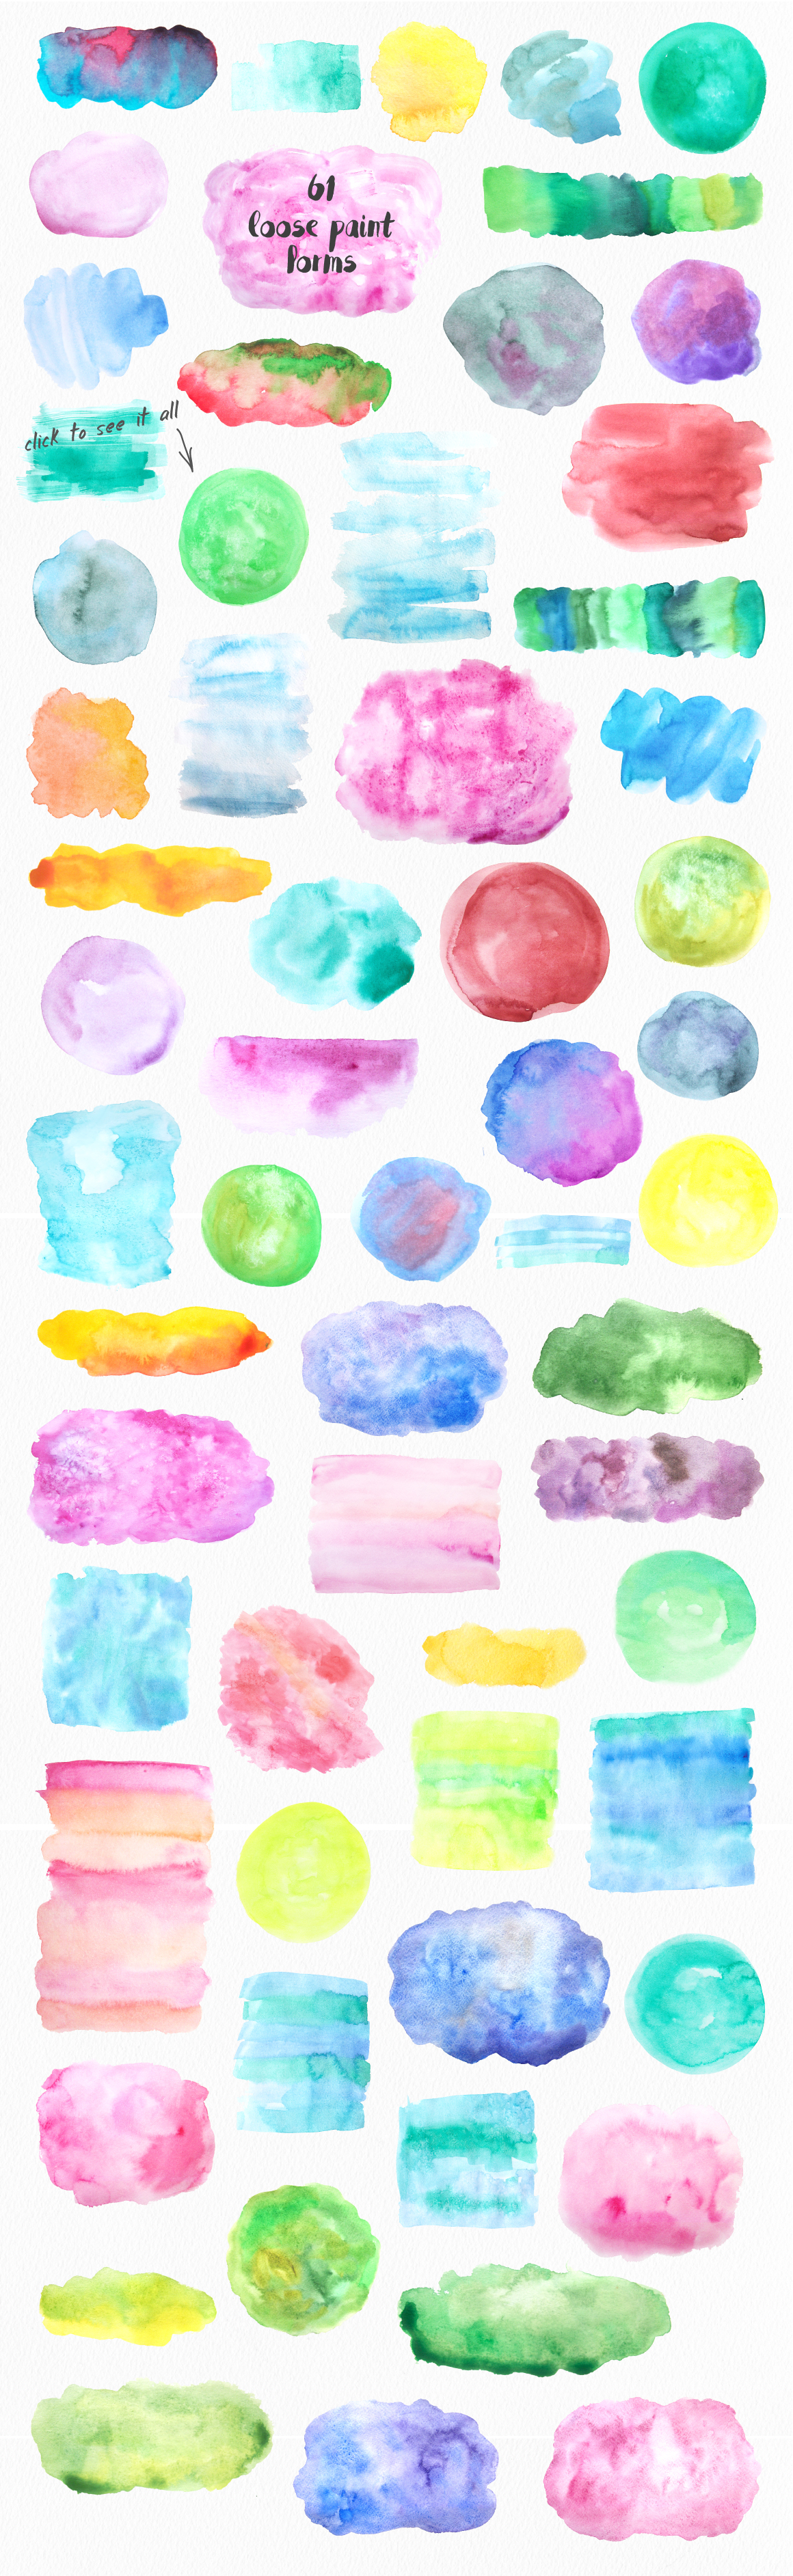 Big Watercolor Textures Pack example image 2